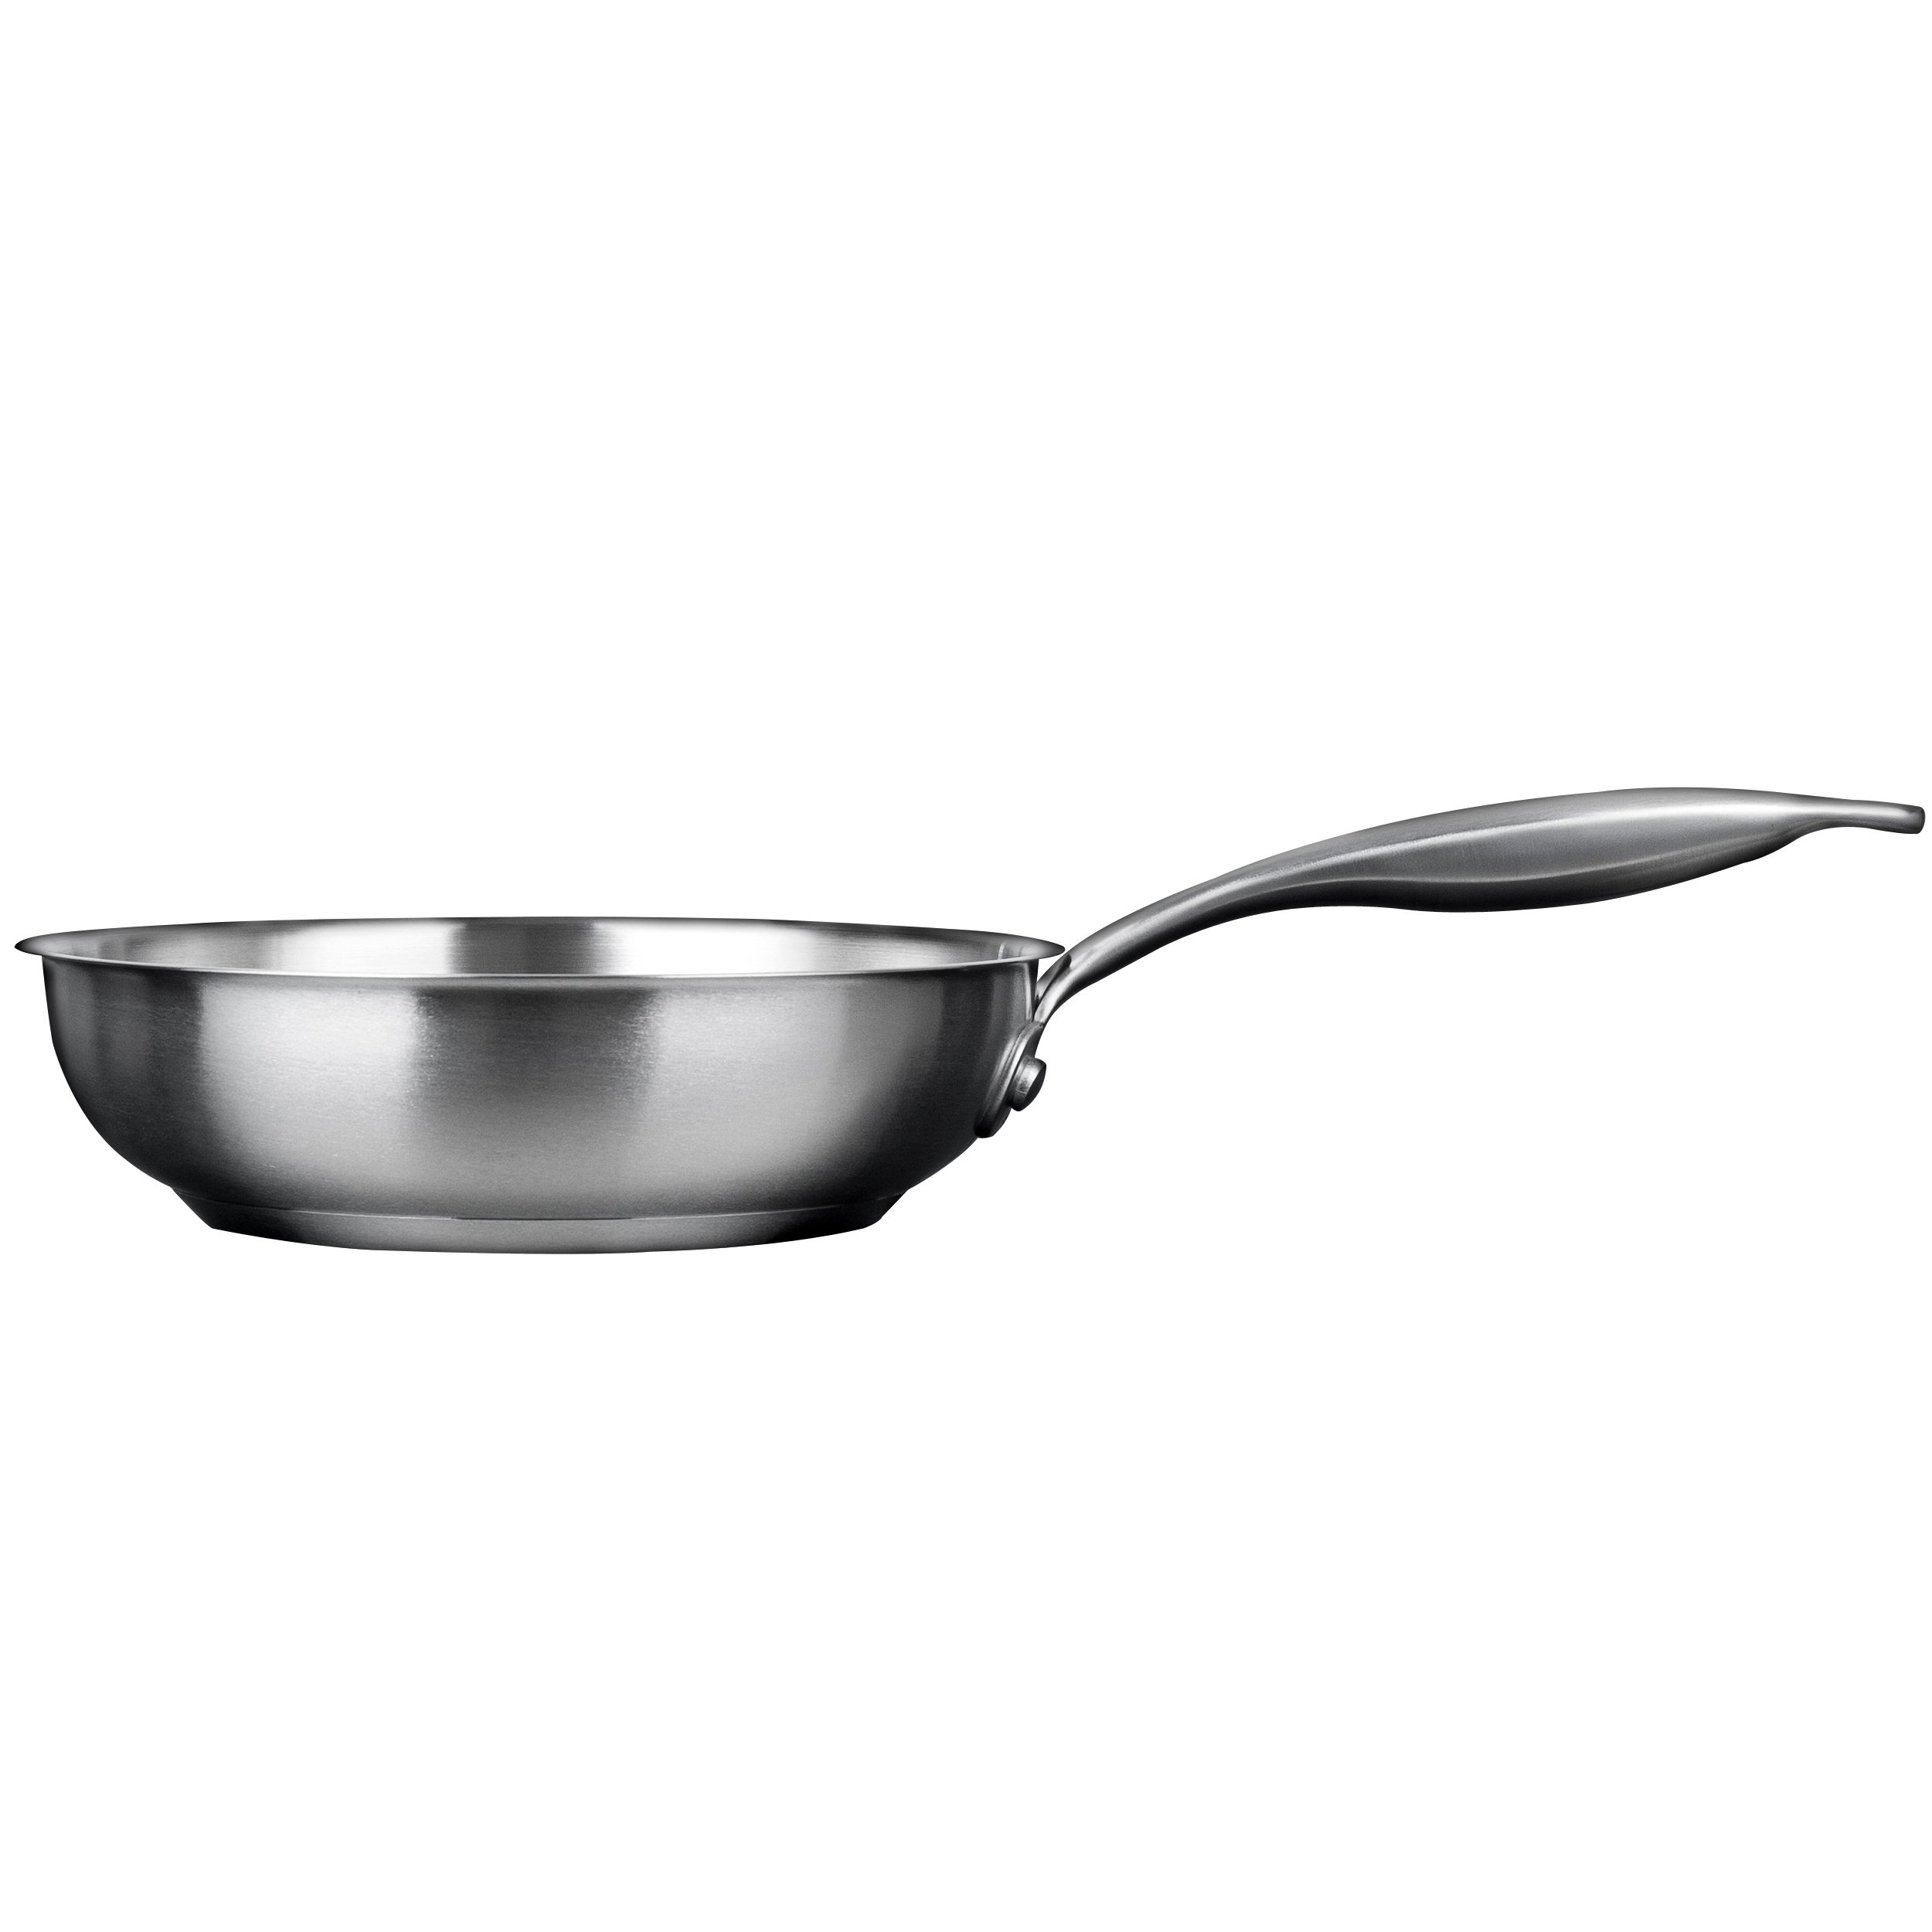 Duxtop Professional Stainless-steel Induction Ready Cookware Impact-bonded Technology (10'' Fry Pan)